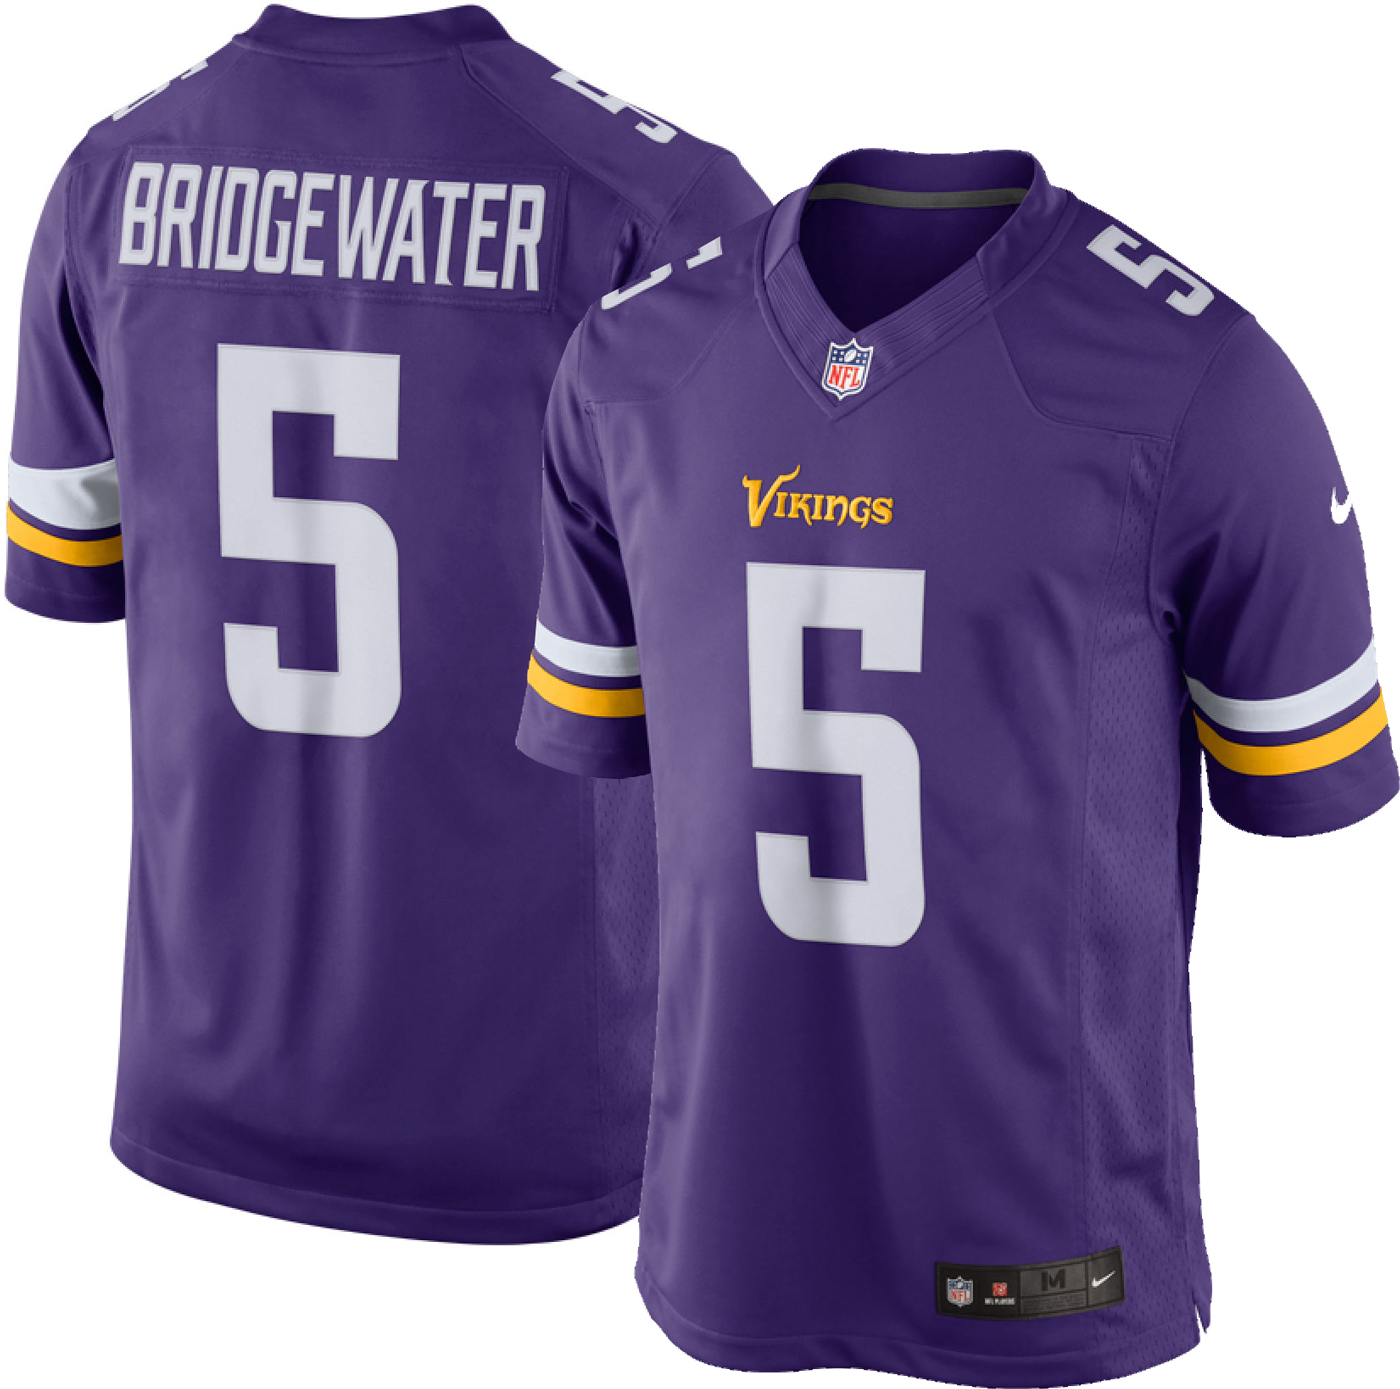 Cheap Nfl Jerseys Online - Here Is What Know nike nfl minnesota vikings teddy bridgewater youth replica football jersey 2